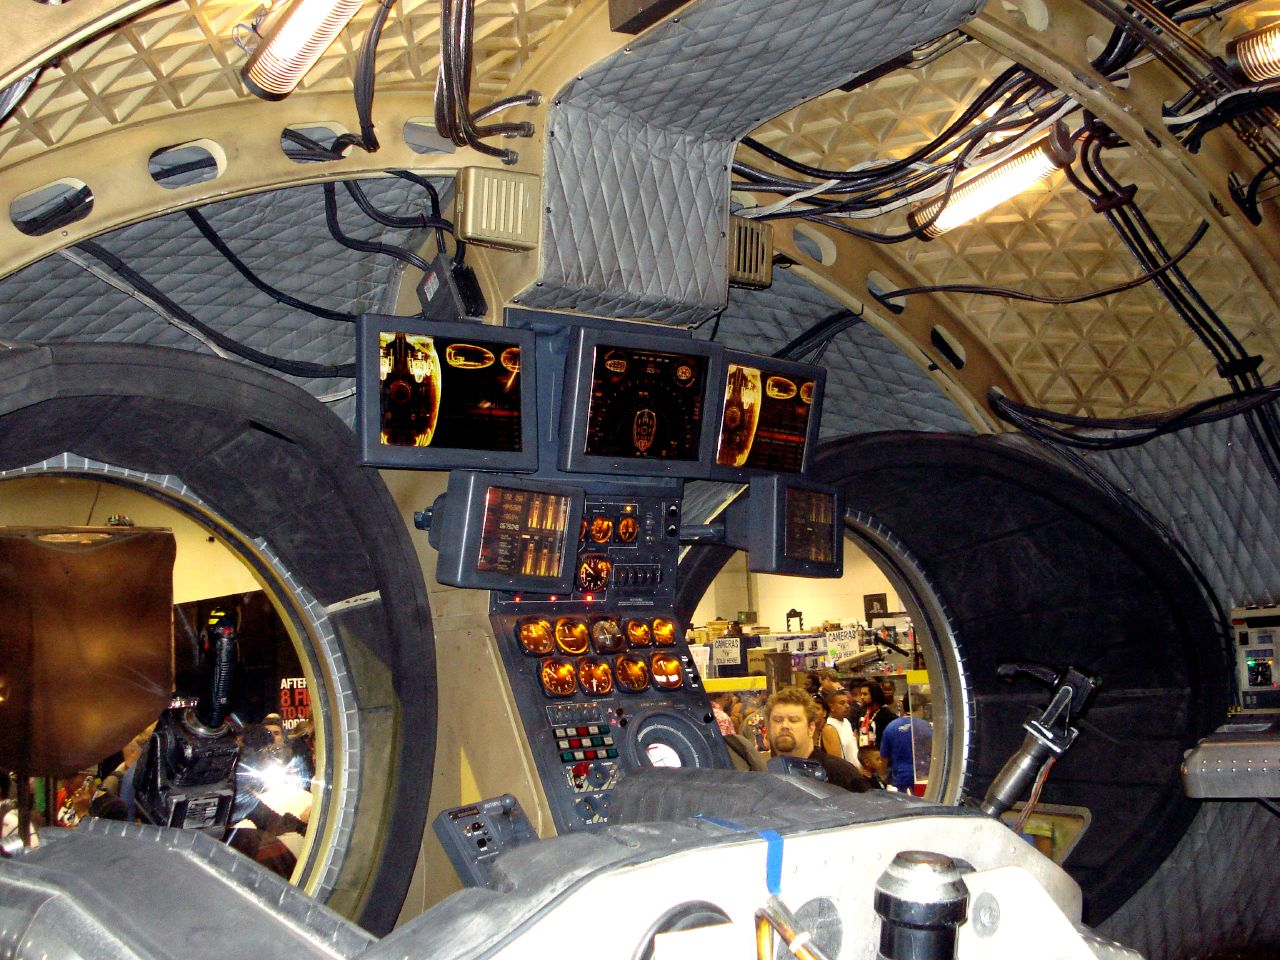 File:Archie (Nite Owl ship) 2.jpg - Wikimedia Commons